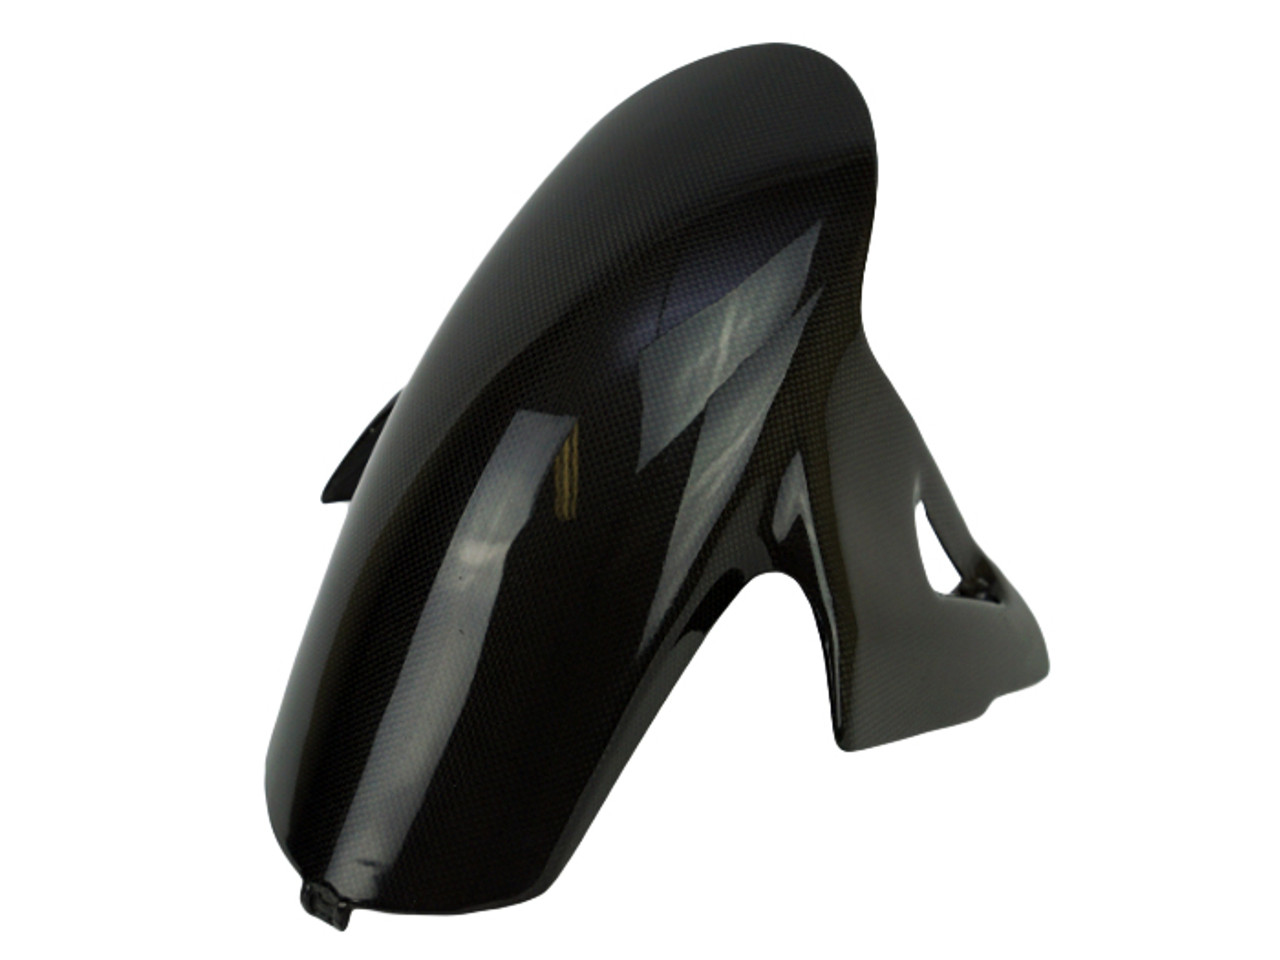 Front Fender in Glossy Plain Weave Carbon Fiber for Ducati Panigale V4, Streetfighter V4